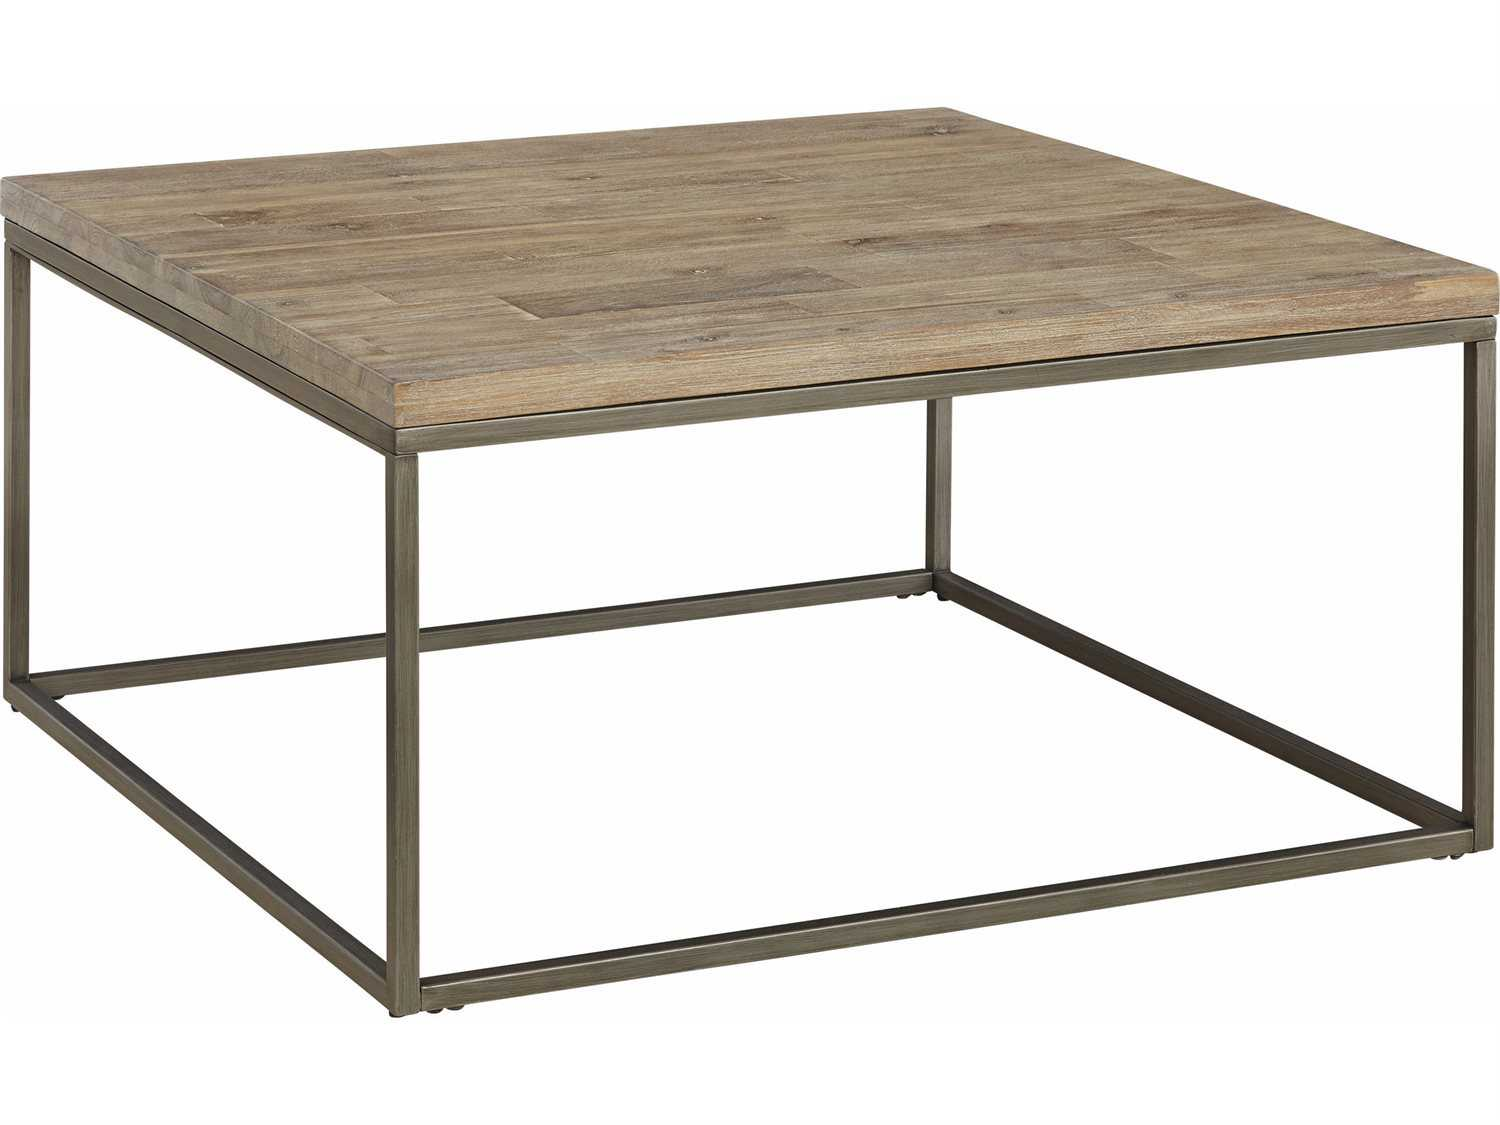 Casana alana weathered acacia 36 39 39 square coffee table cx836065acg065 Wood square coffee tables